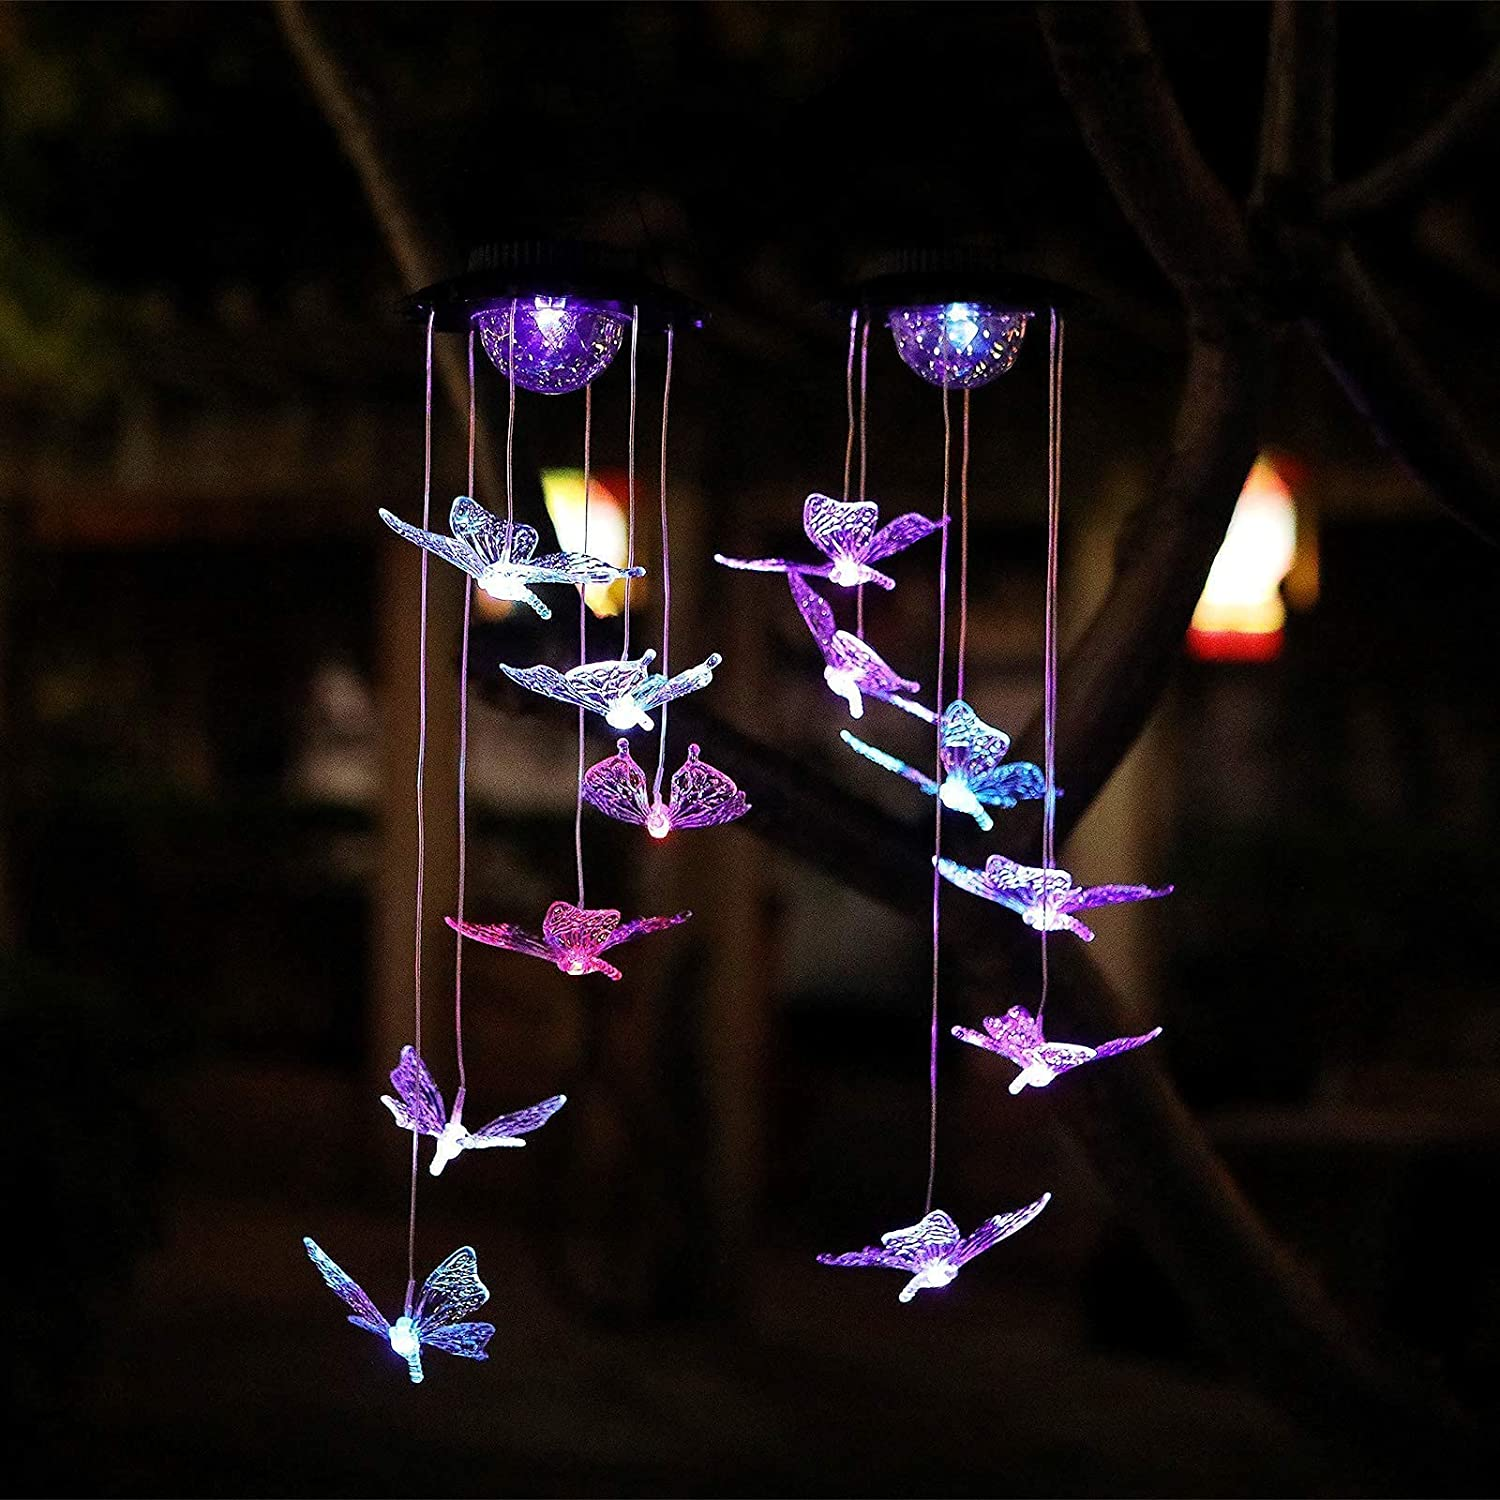 Yeuago 2 Pack Solar Wind Chimes Outdoor, Changing Color LED Butterfly Wind Chimes,Decor for Patio Yard Garden Home,for Mom, Grandma Birthday Gifts